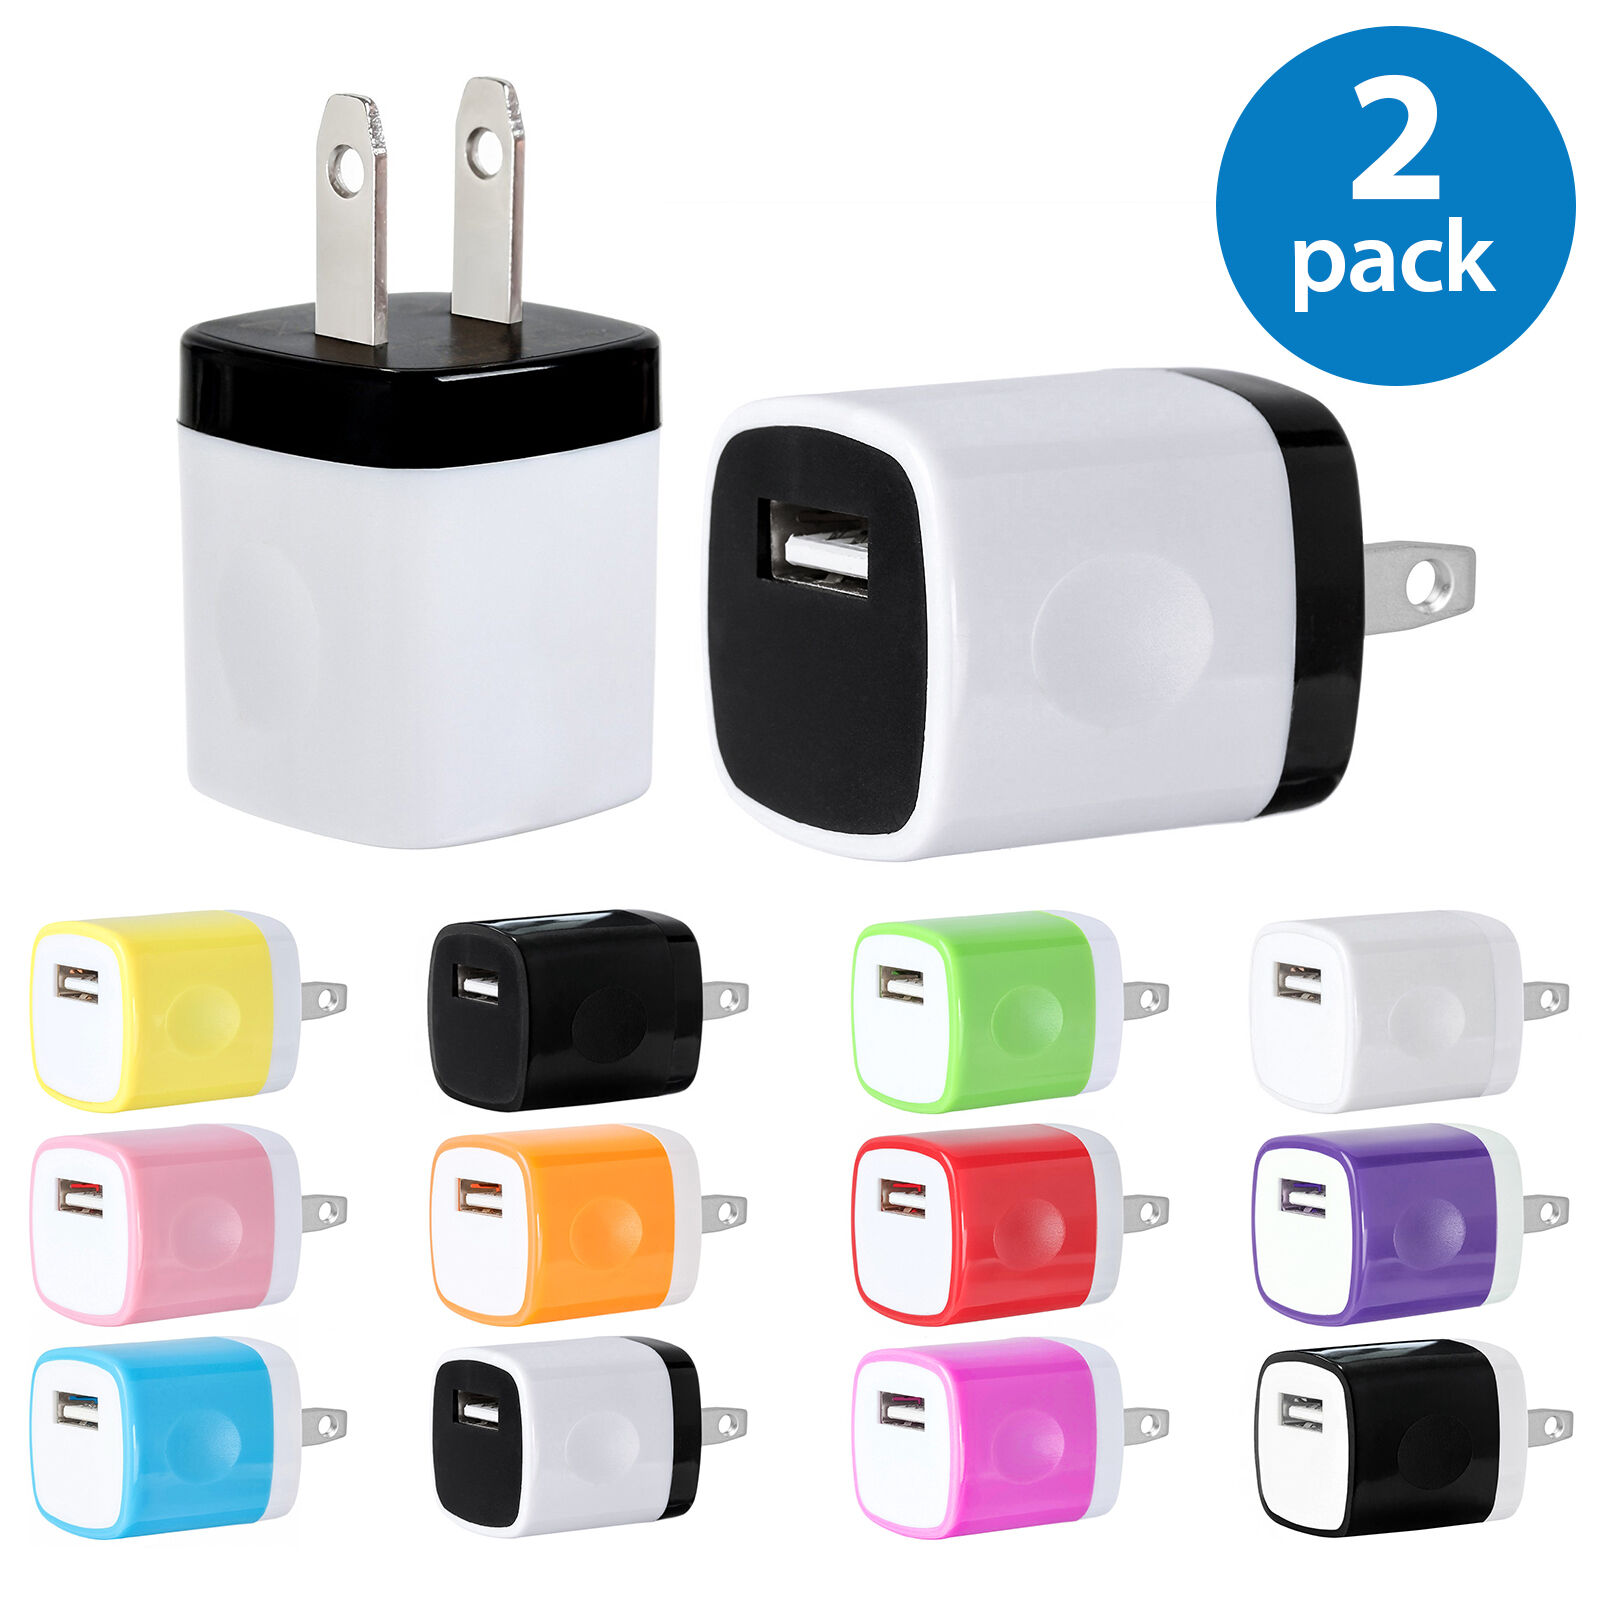 Iphone 5 Charger - 2x USB Wall Charger Plug Home Power Adapter For iPhone 5 6 7 Samsung Android LG